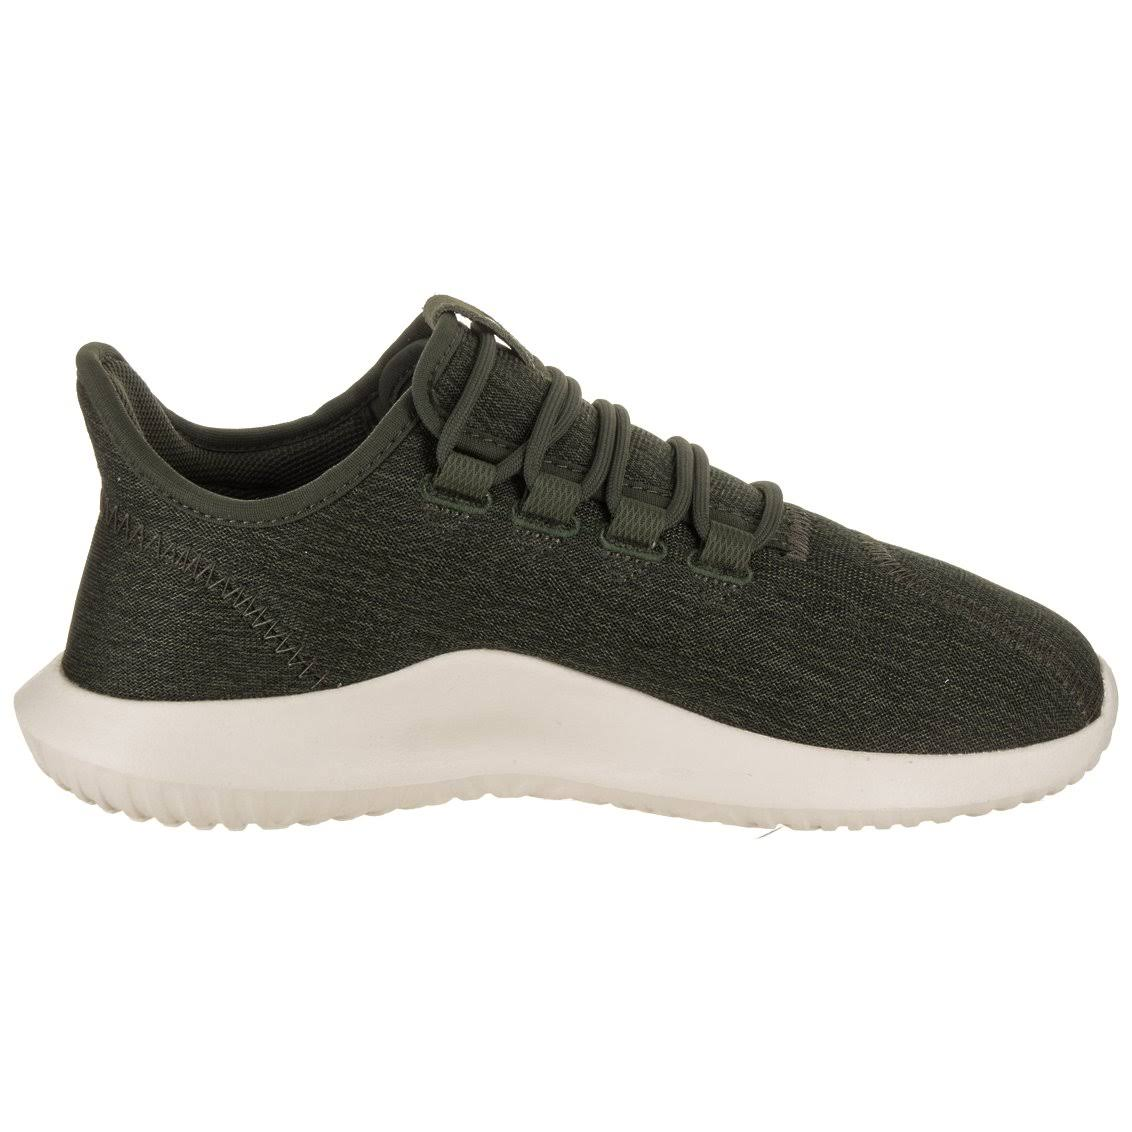 Damenschuhe Adidas Tubular Größe Shadow Night Aq0194307 White Off Nacht Cargo Originals 10 tRwrqptx